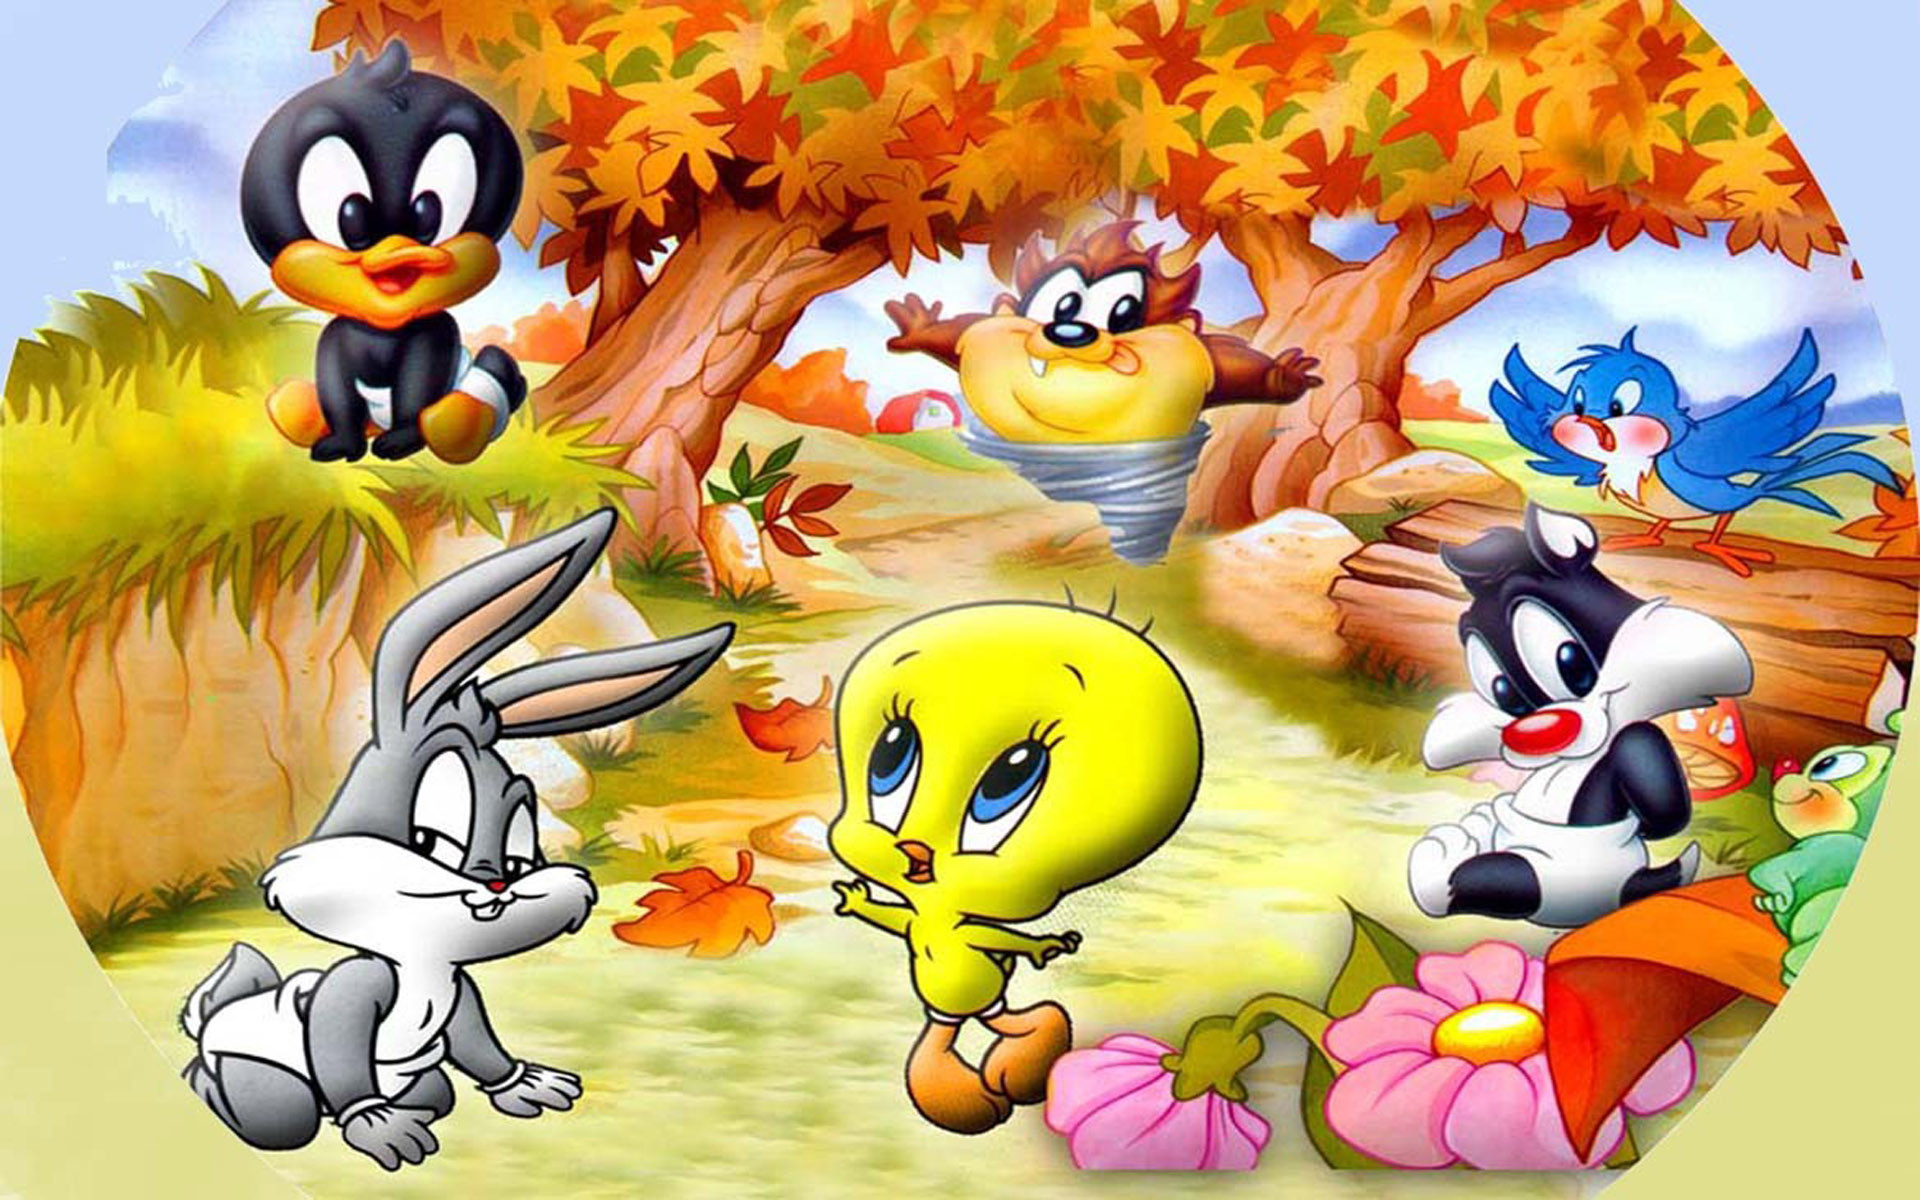 Looney Tunes Characters Wallpapers ·① WallpaperTag